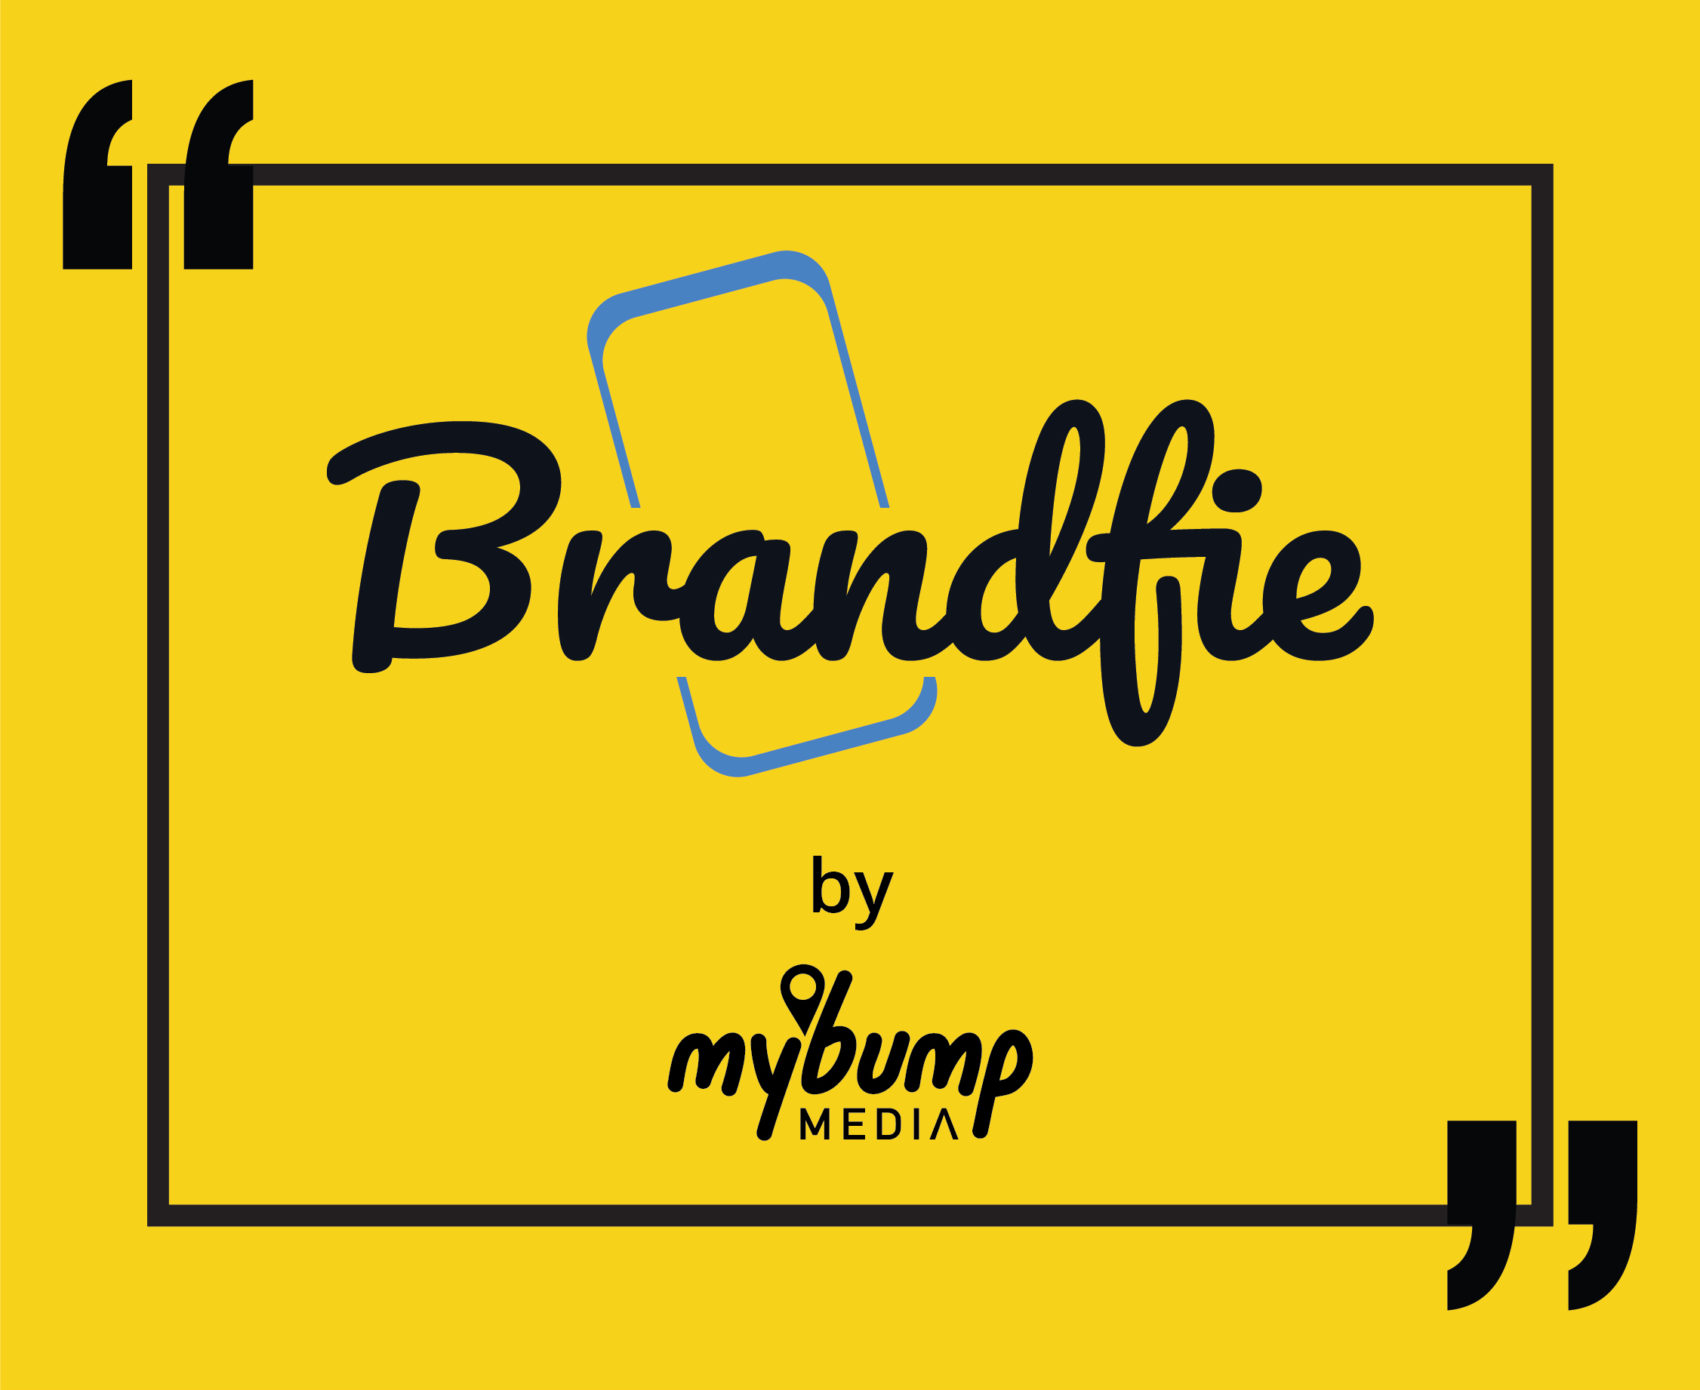 BRANDFIE? What is that?